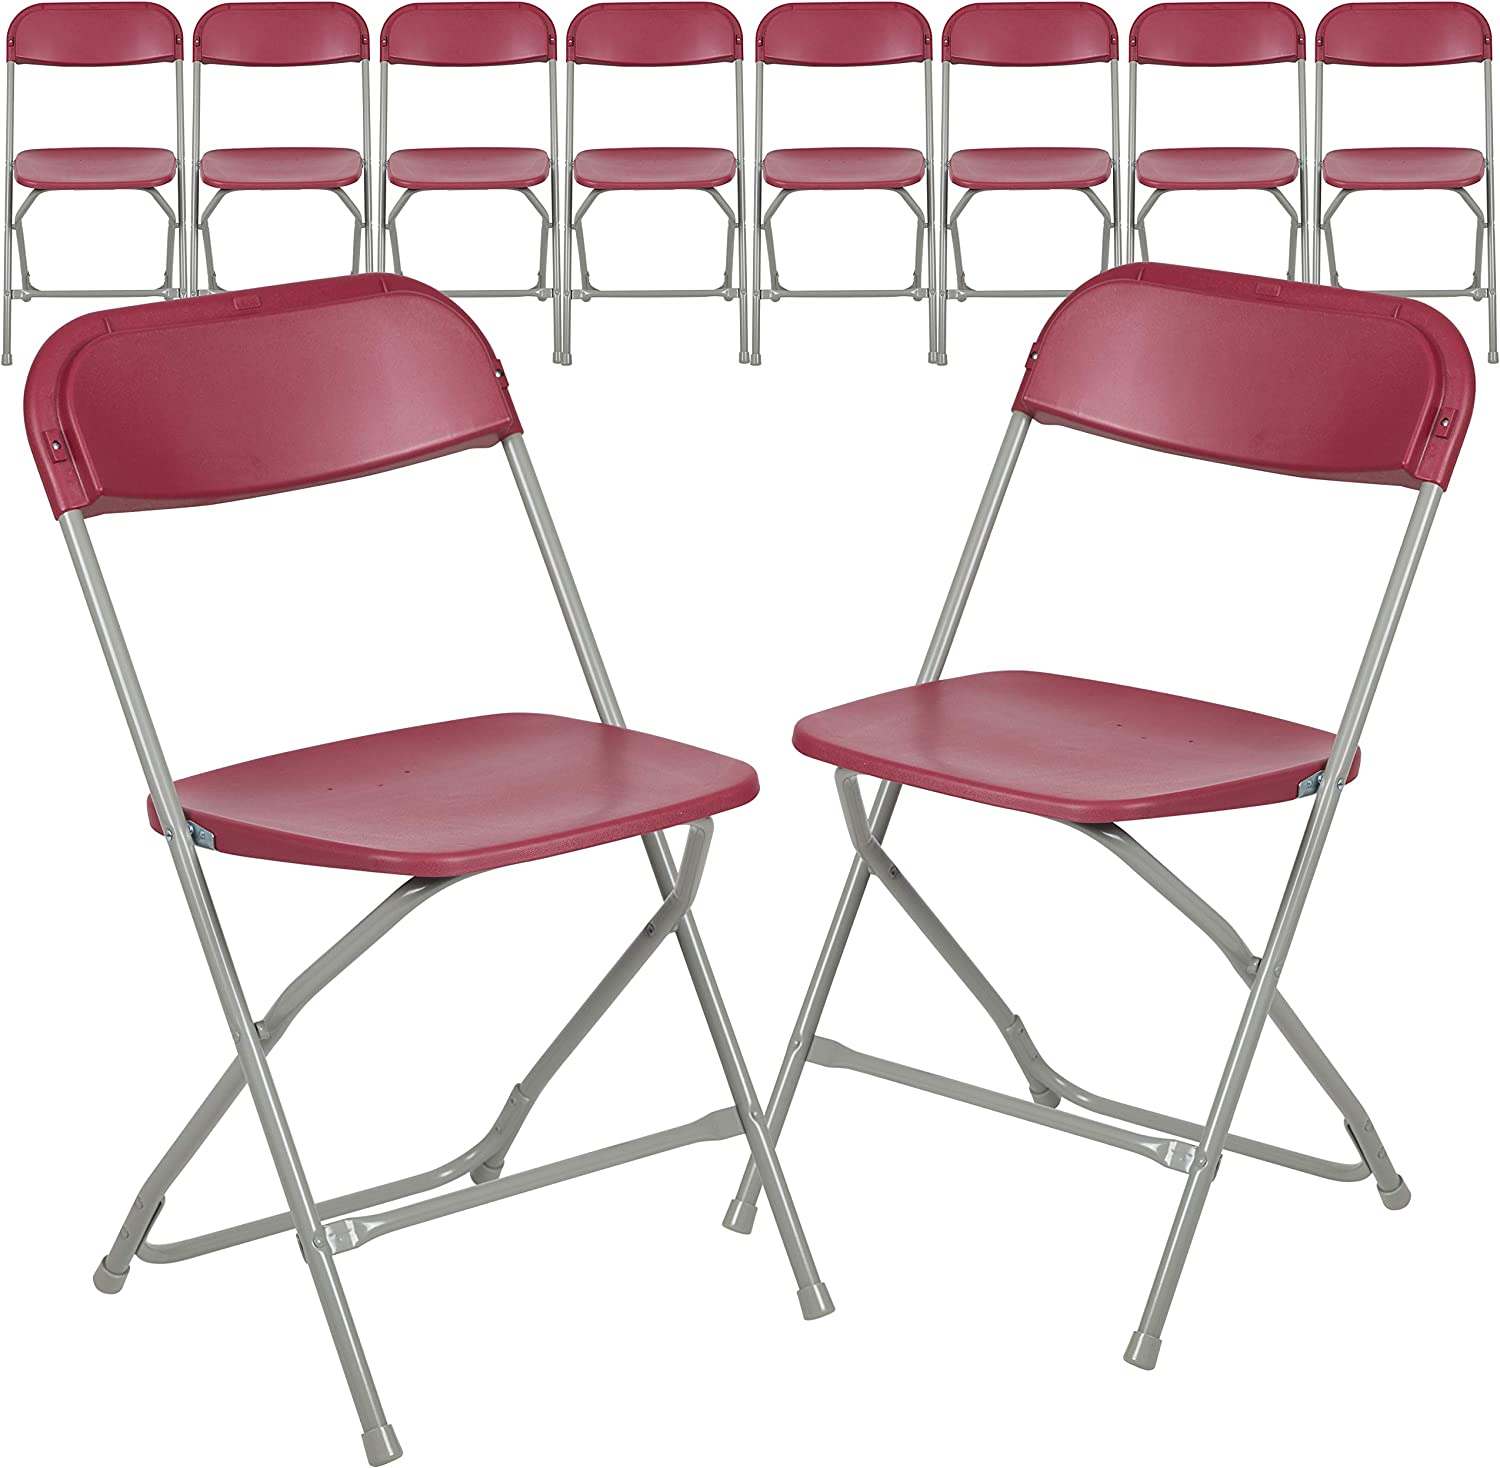 Flash Furniture Hercules Series 5 ☆ very popular Plastic - Chair 10 40% OFF Cheap Sale Red Folding